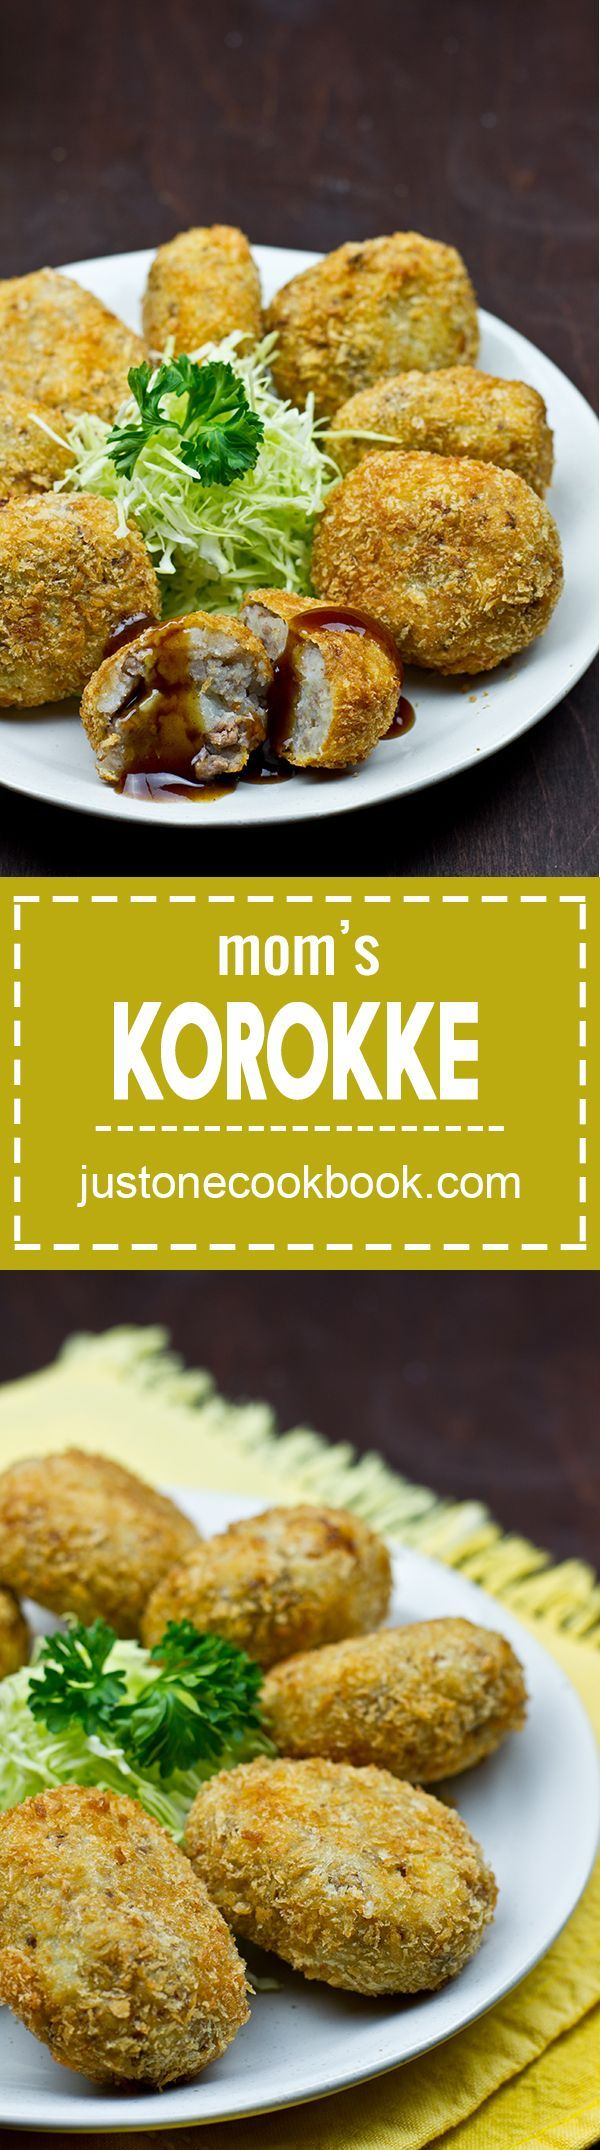 Mom's Korokke (Croquette)   Visit japan-marche.com to find traditional and designed, quality Japanese items for your home and interior.